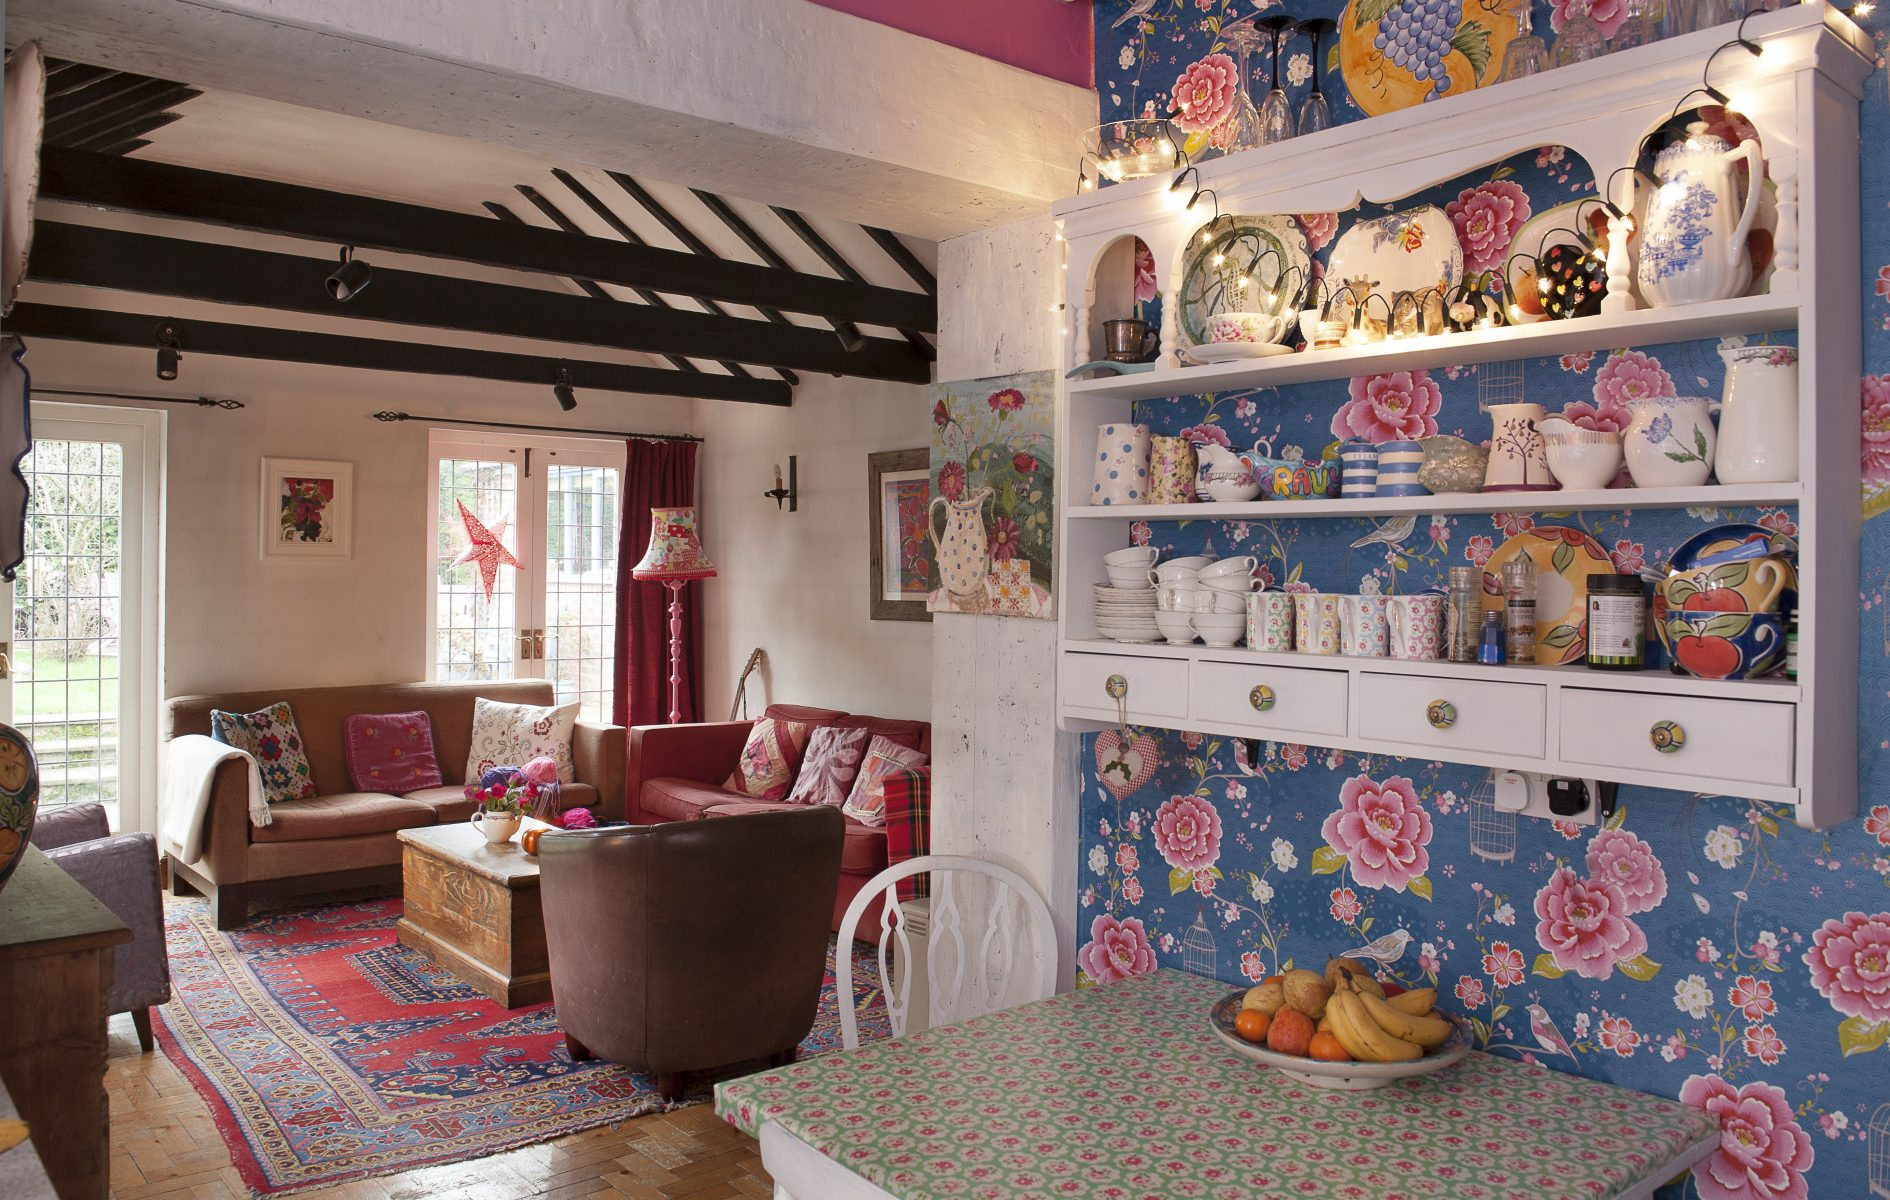 In contrast to the kitchen, the restrained colour-palette of the drawing room is complemented by pops of colour in the form of 'Yolanda' a pink standard lamp created by Oeda, oriental carpeting and a cherry-red sofa and curtains